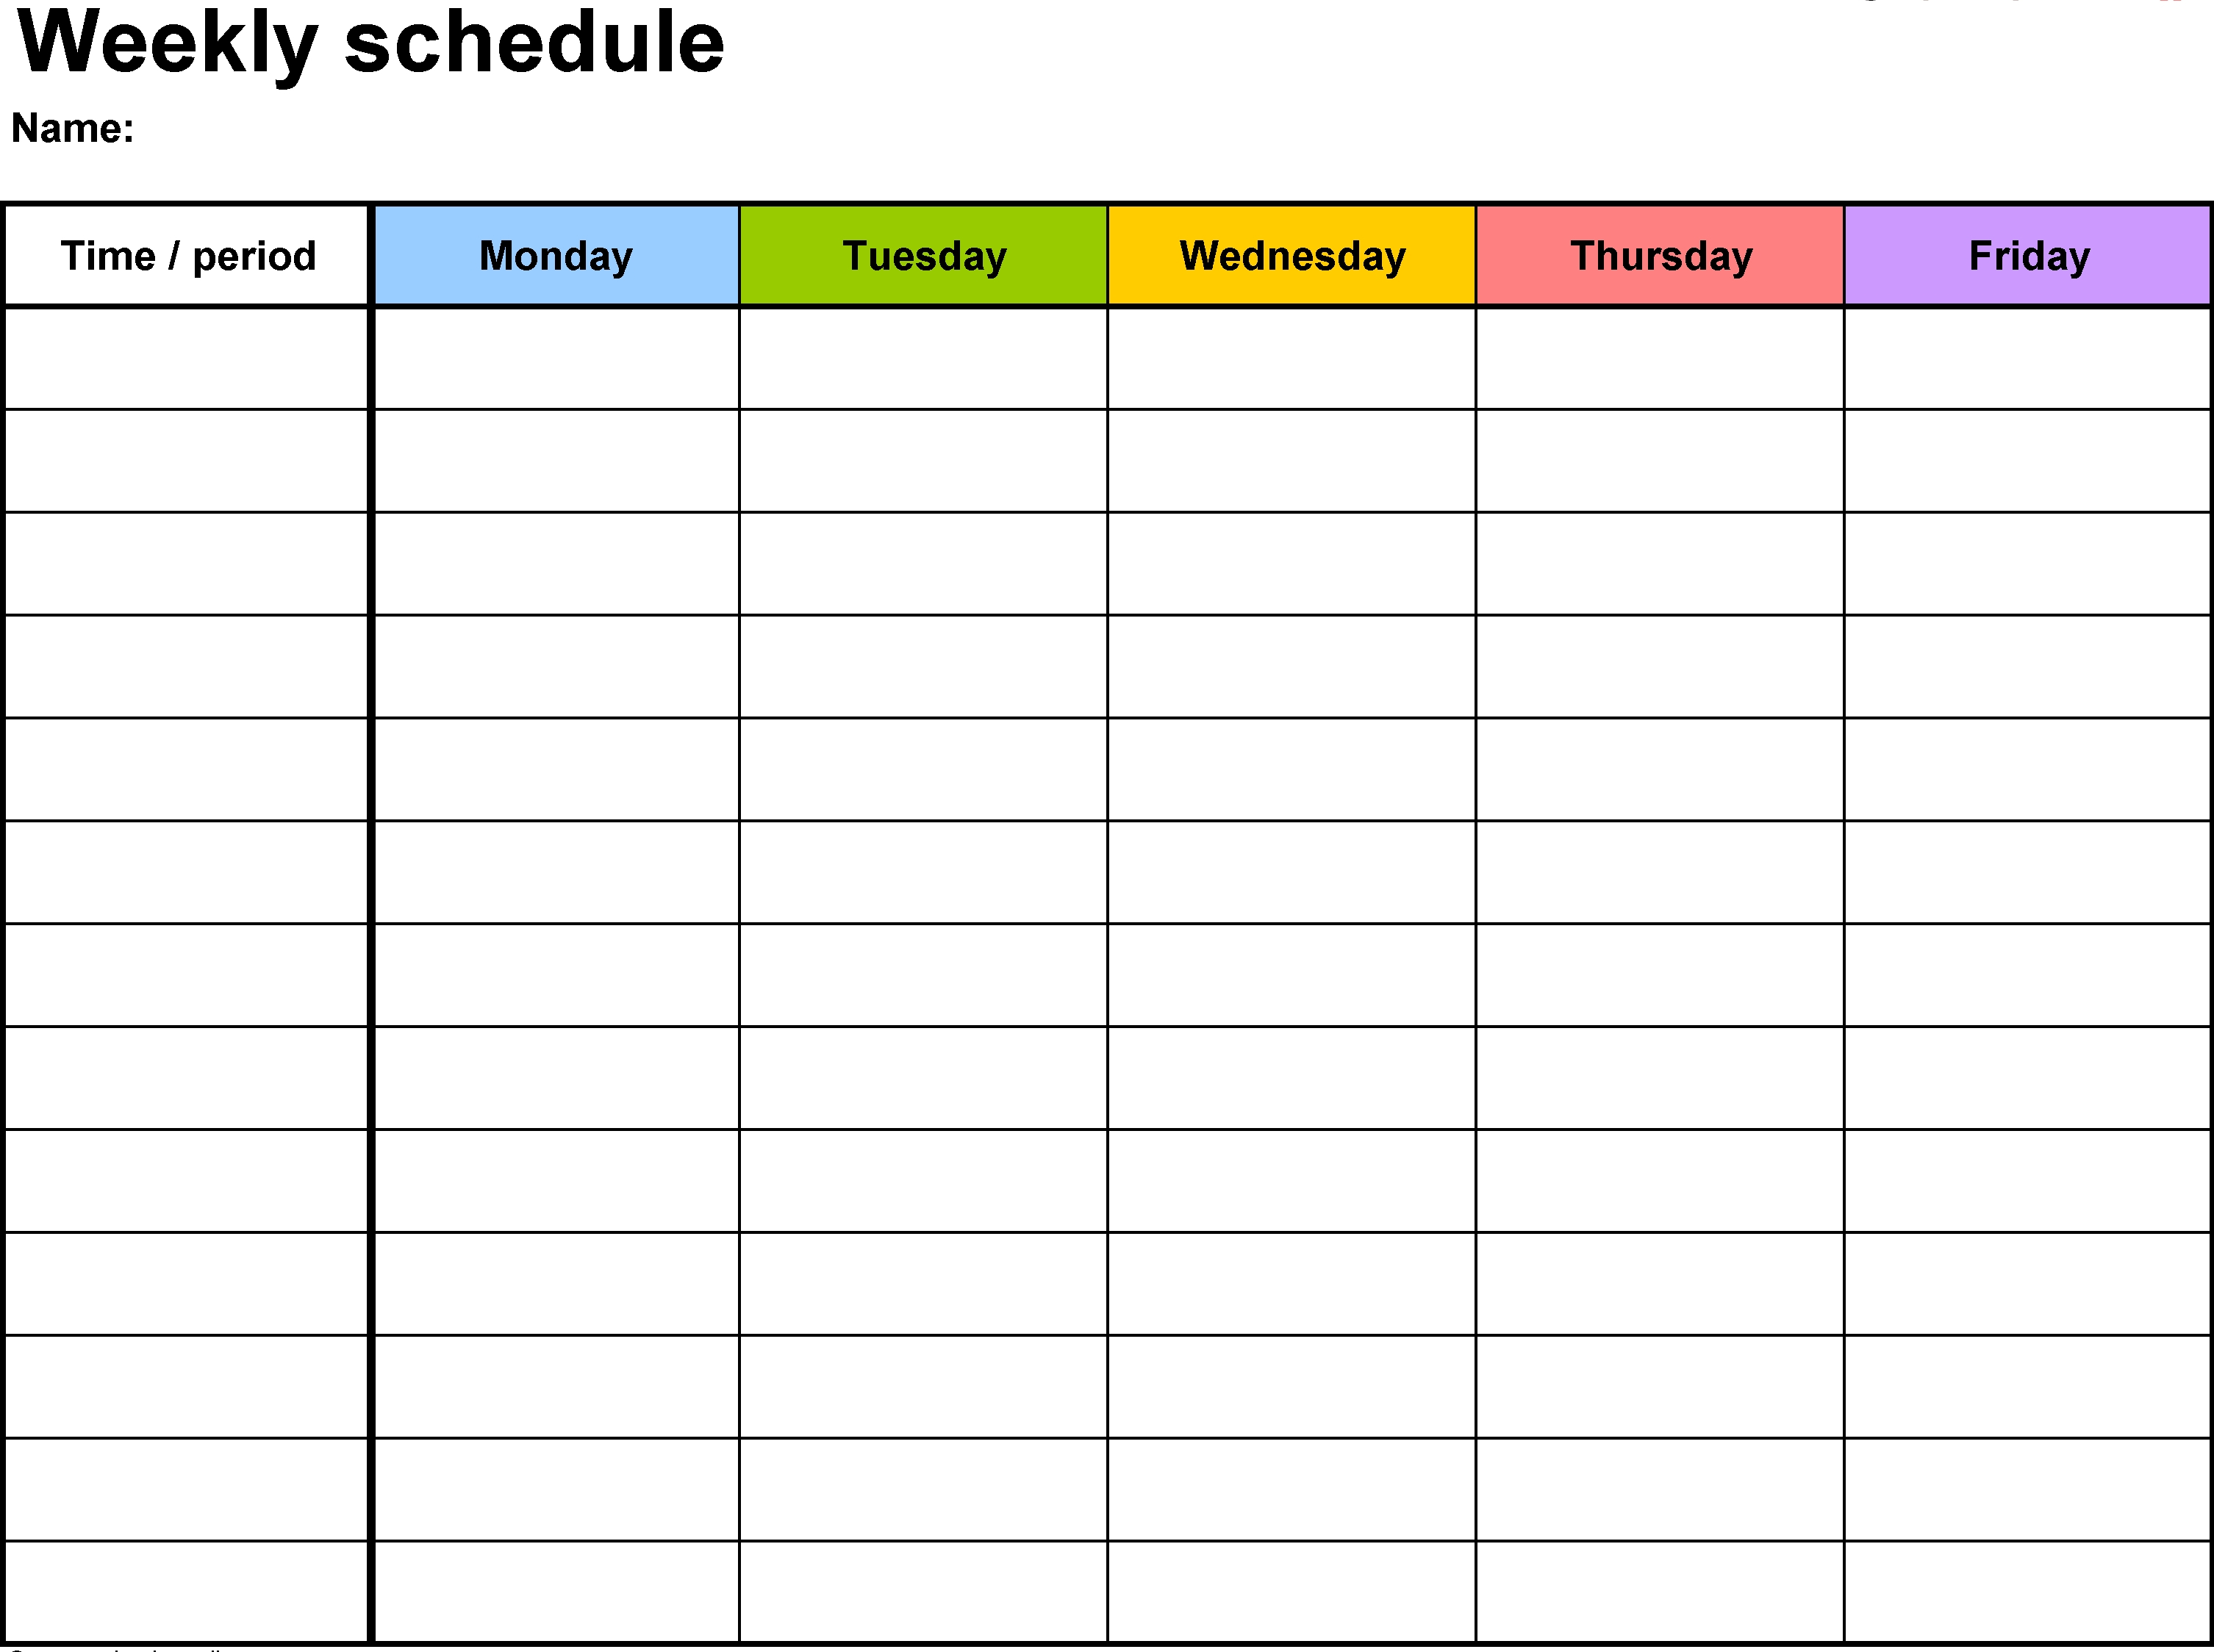 Weekly Hourly Calendar Template | Monthly Calendar Template inside Weekly Hourly Calendar